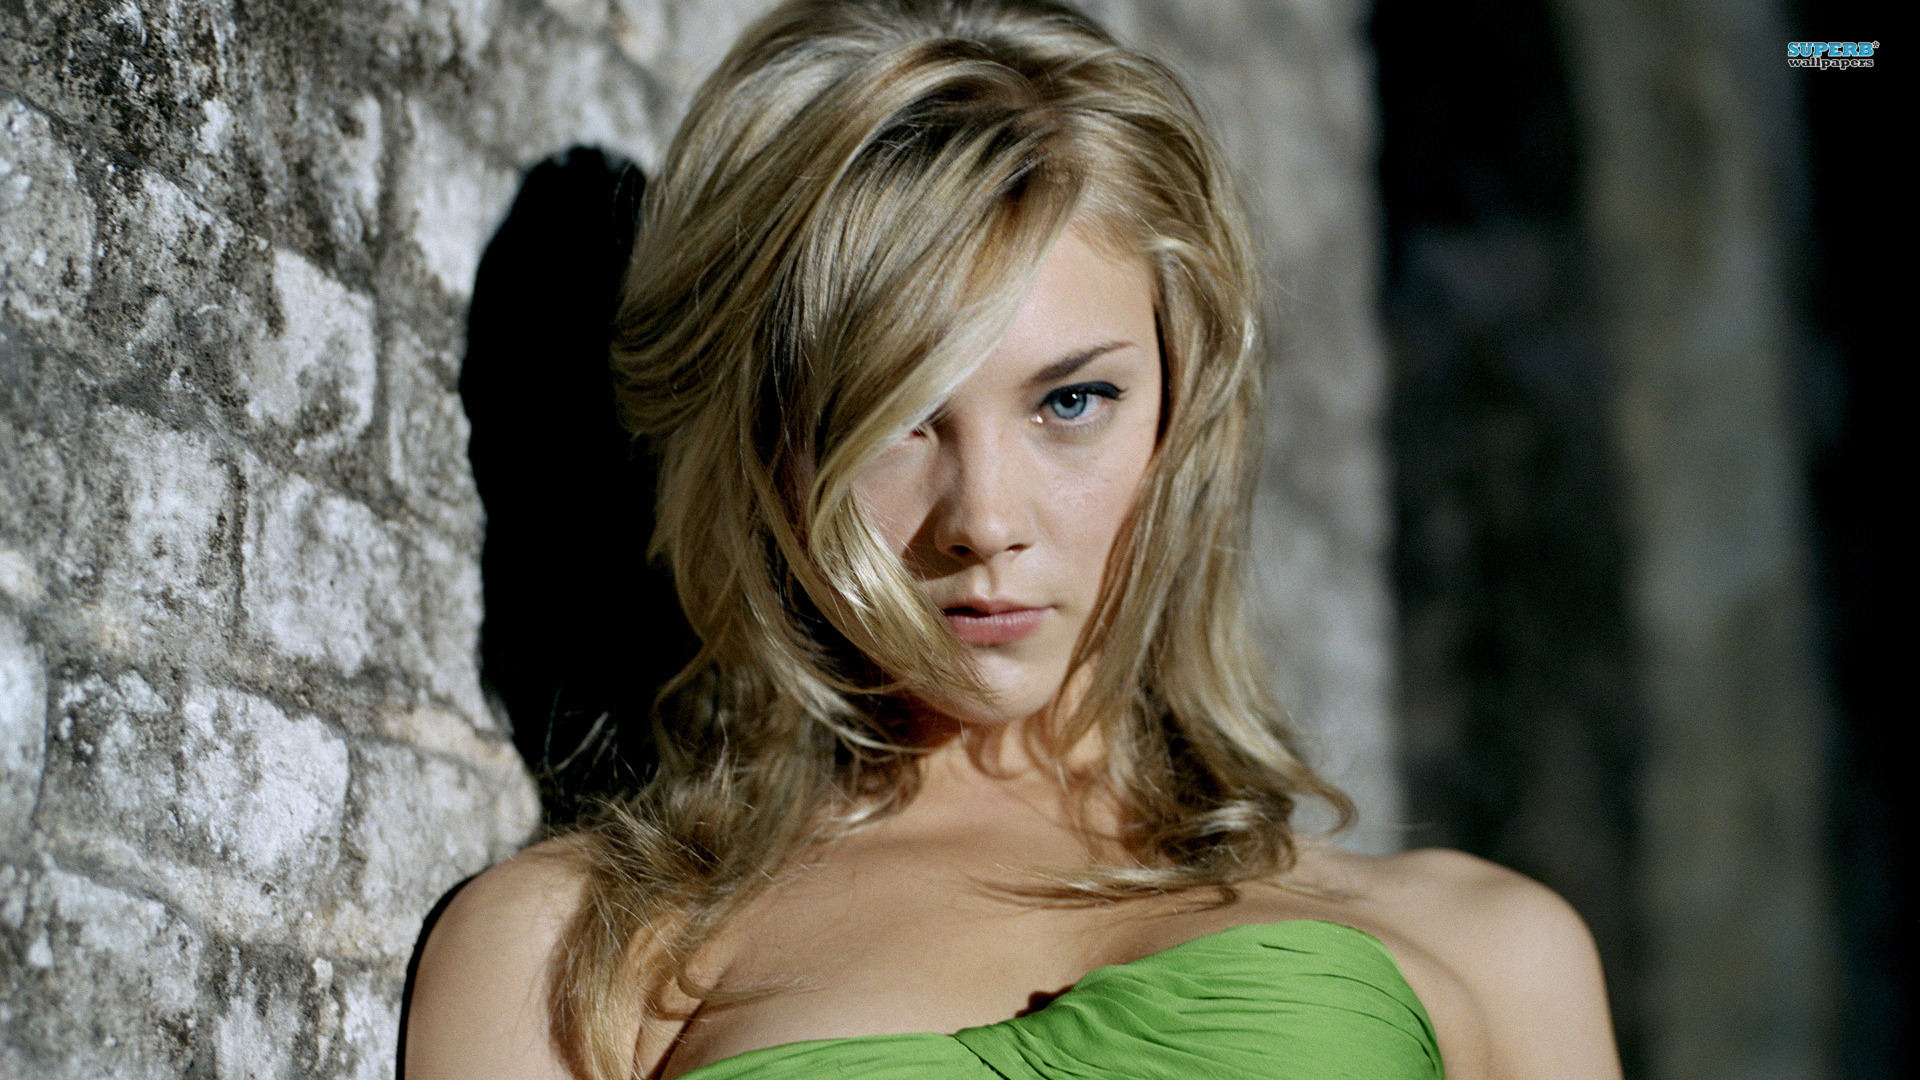 Natalie Dormer Routers Background Backgrounds Celebrities Updated wallpaper